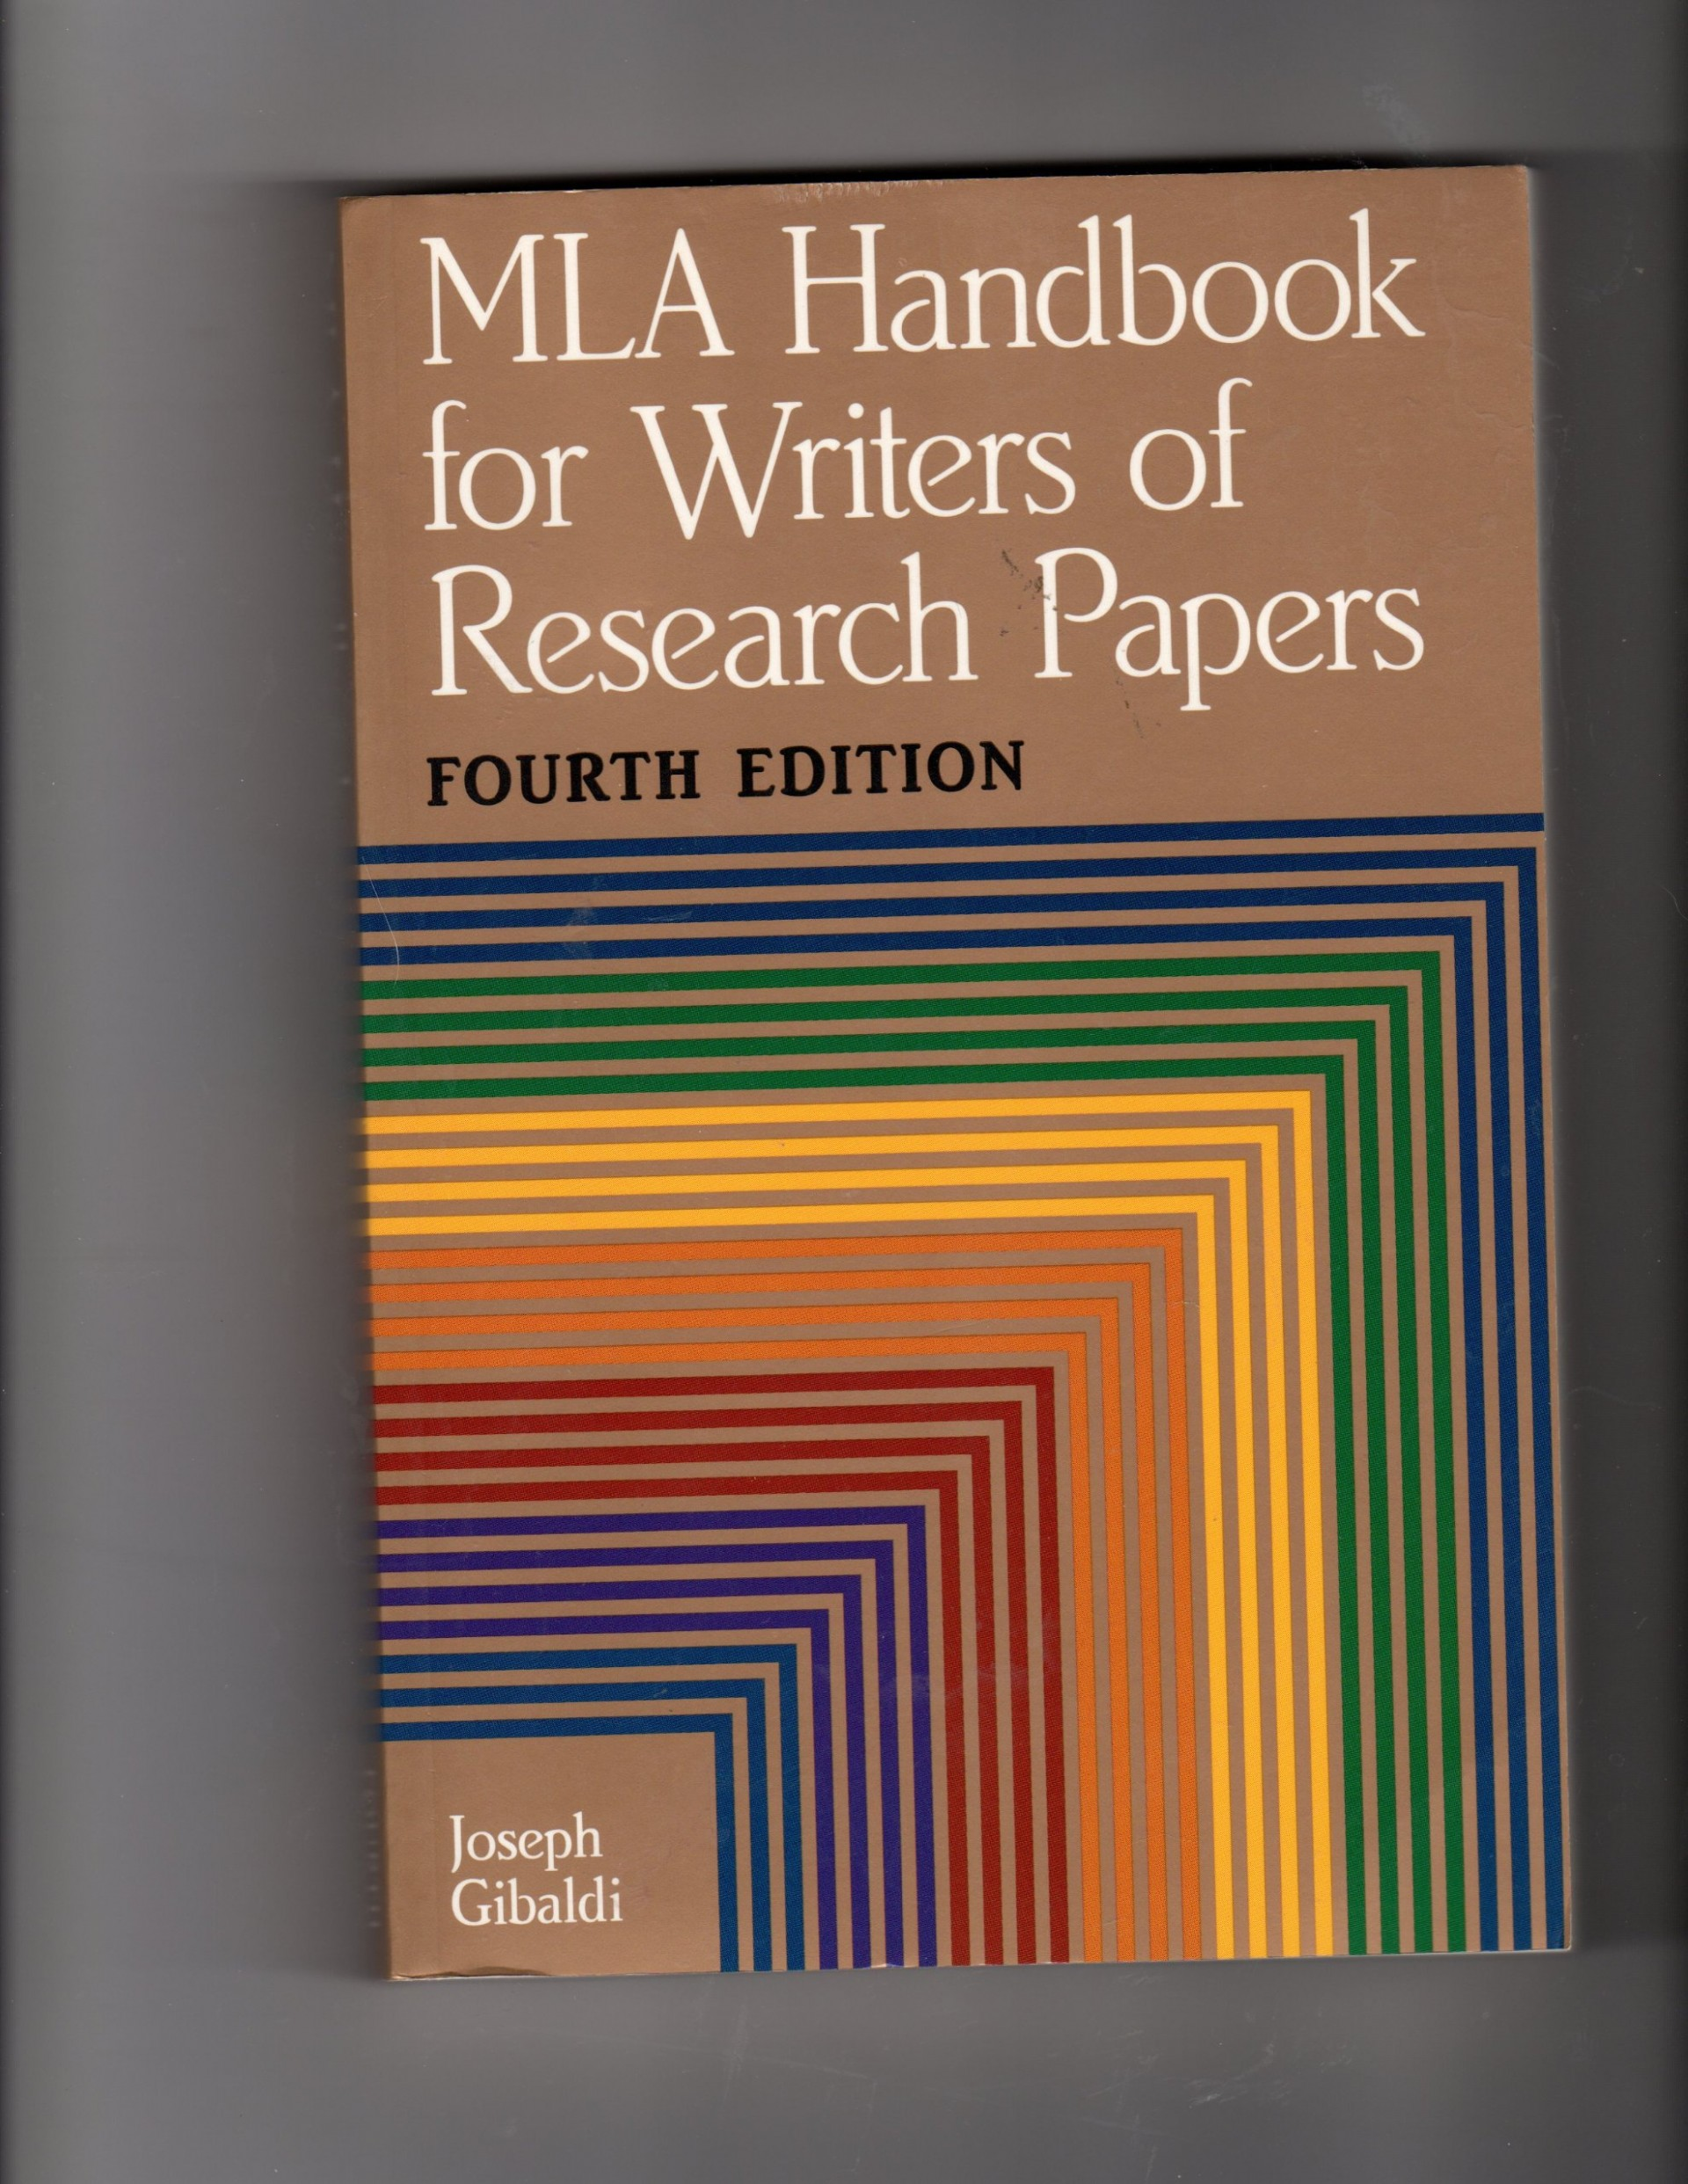 003 91or7esc2gl Research Paper The Mla Handbook For Writers Of Fearsome Papers 8th Edition 7th 2009 (8th Ed.) 1920